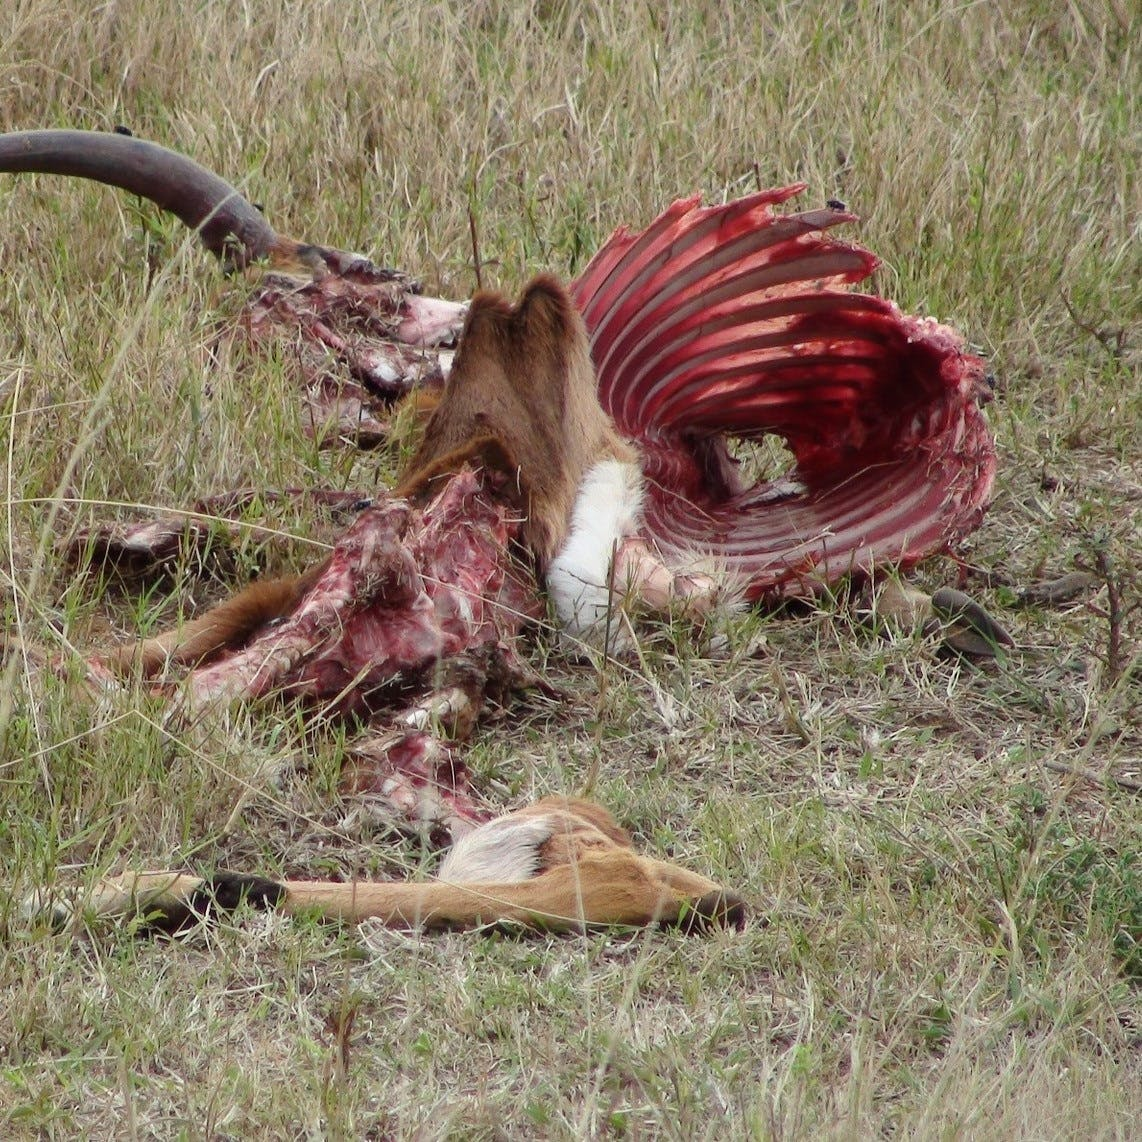 A deer carcass. European brown bears play an important role in culling the weak and cleaning up dead animal carcasses